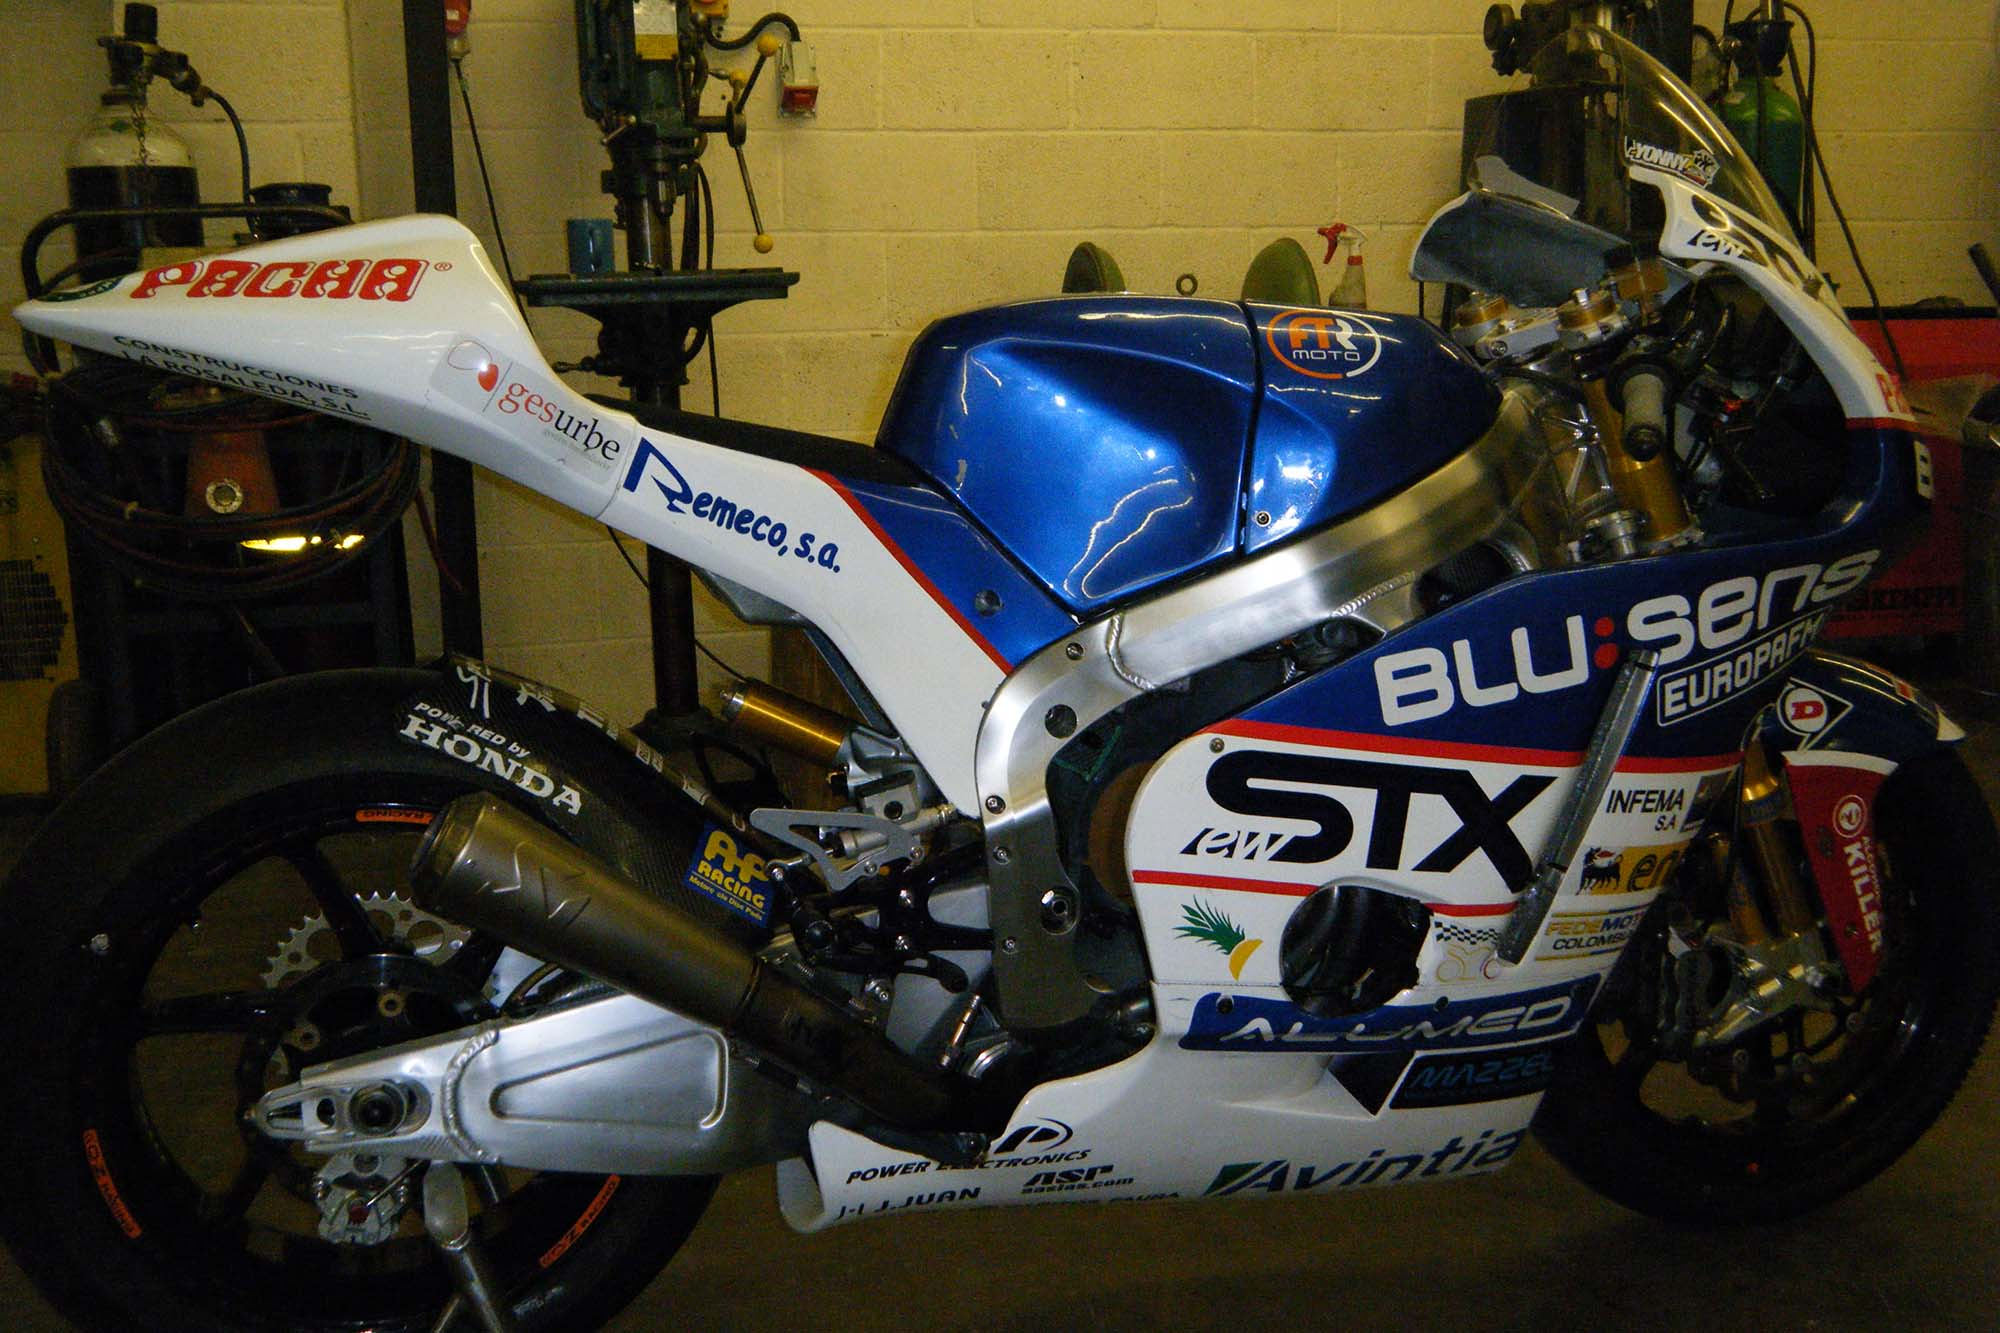 Bike Stores Near Me M Moto Race Bike For Sale